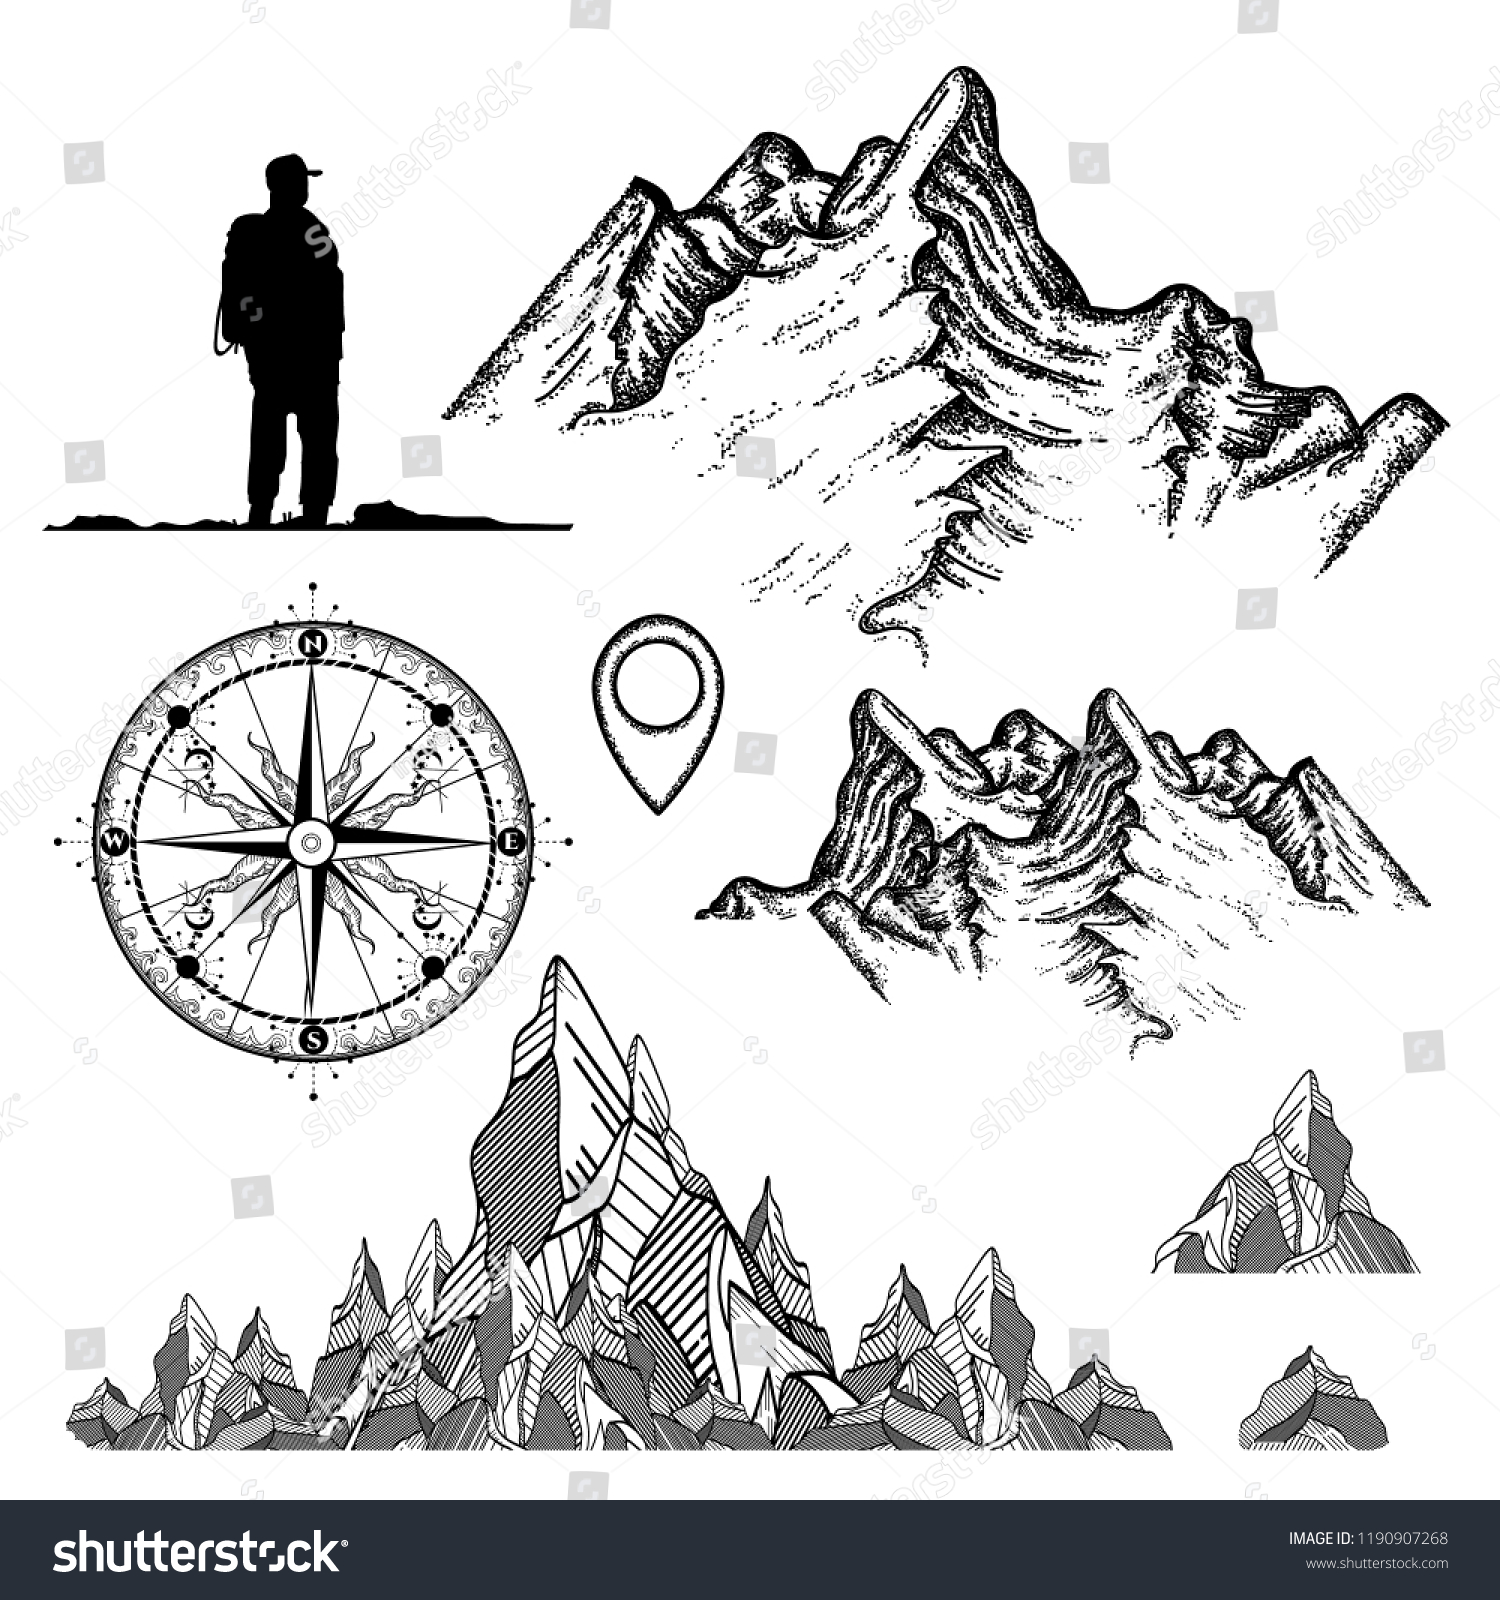 3cc99182f57ea Outdoor, tourism, camping, rock-climbing hand drawn retro style set.  Mountains